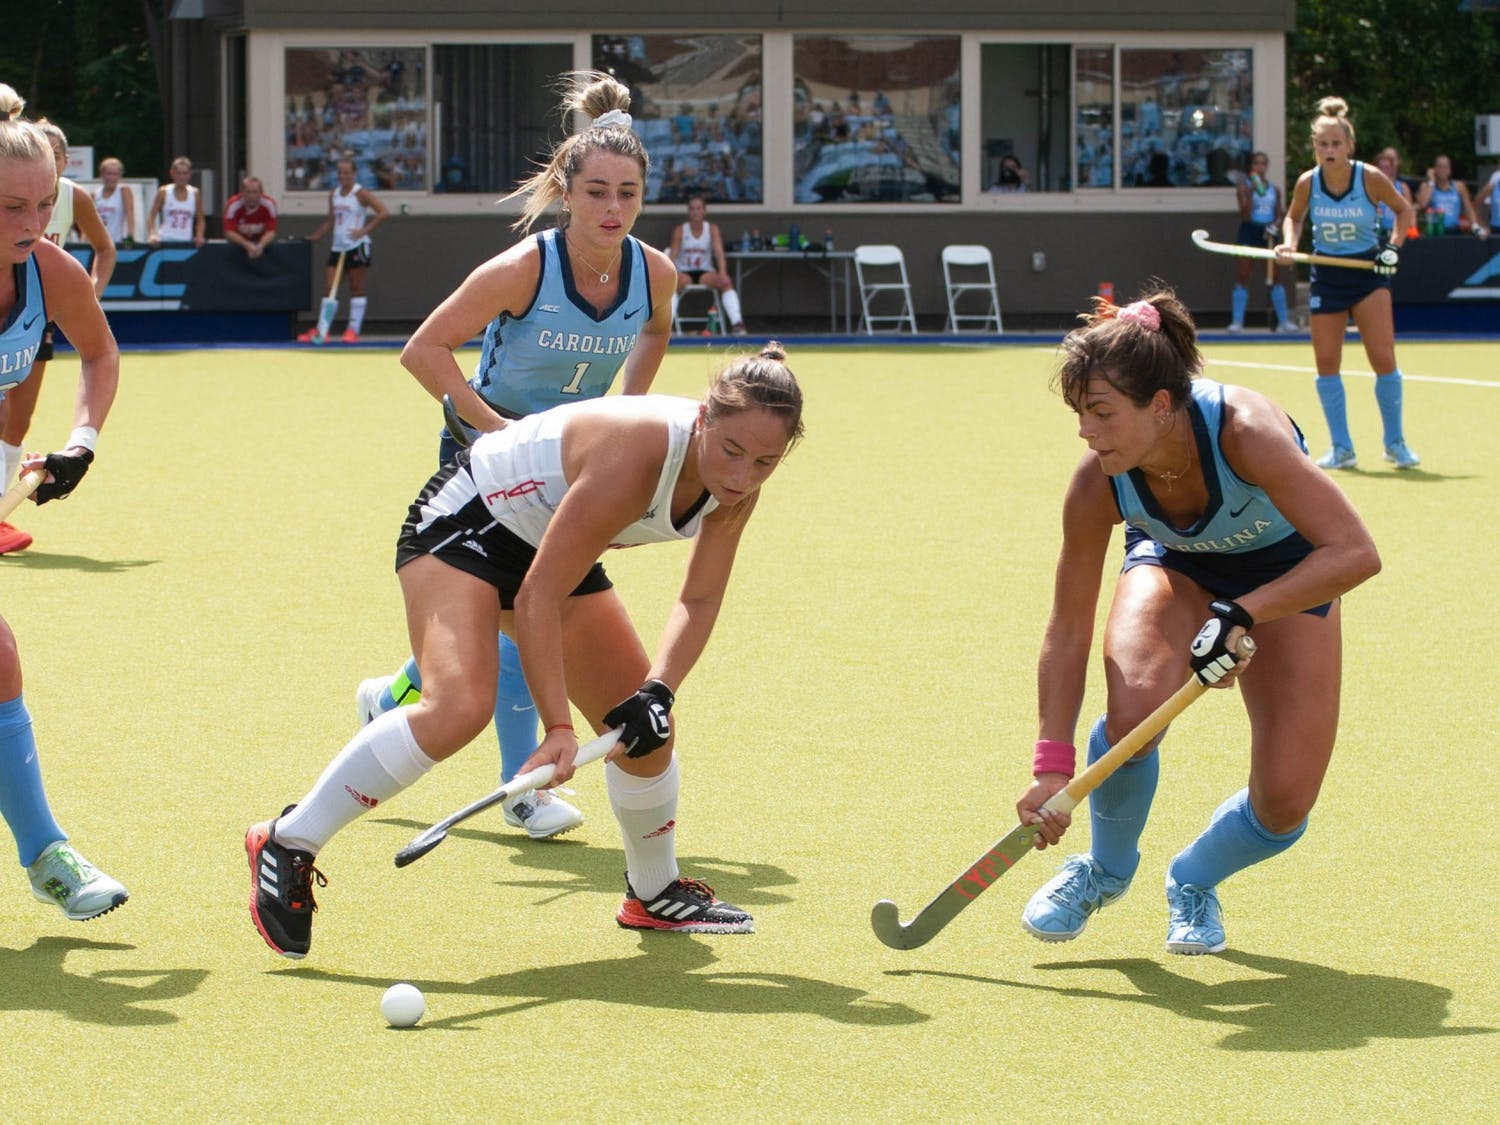 UNC senior forward Meredith Sholder (2) attempts to gain possession of the ball during the field hockey game against the Miami Redhawks at Karen Shelton Stadium on Sept. 19, 2021. The Tar Heels defeated the Redhawks 7-2.